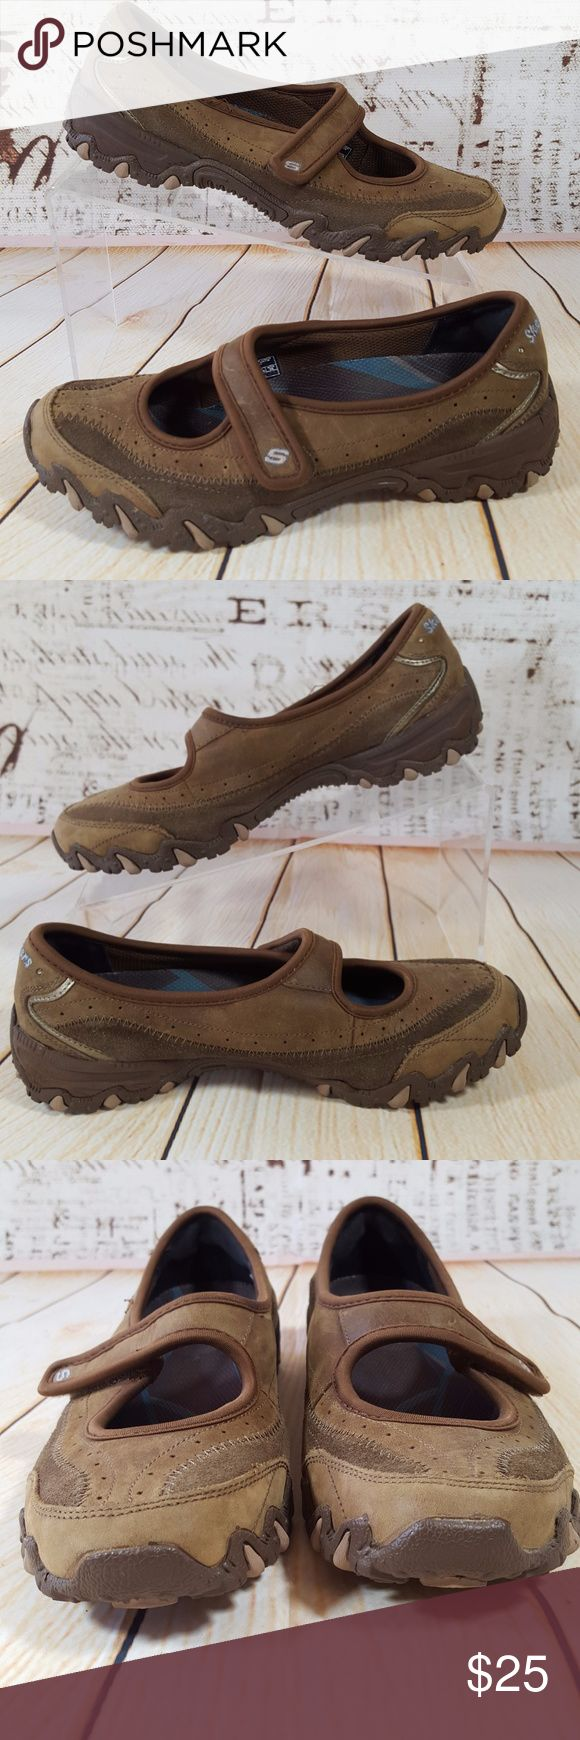 Mary Jane Ballet Flat Loafer Brown Nubuck Leather Nice pair of Skechers Mary Jane schoolgirl shoes  Two tone brown leather  Very gently worn  Women's size US 6.5 M  Style number 47118 Skechers Shoes Flats & Loafers